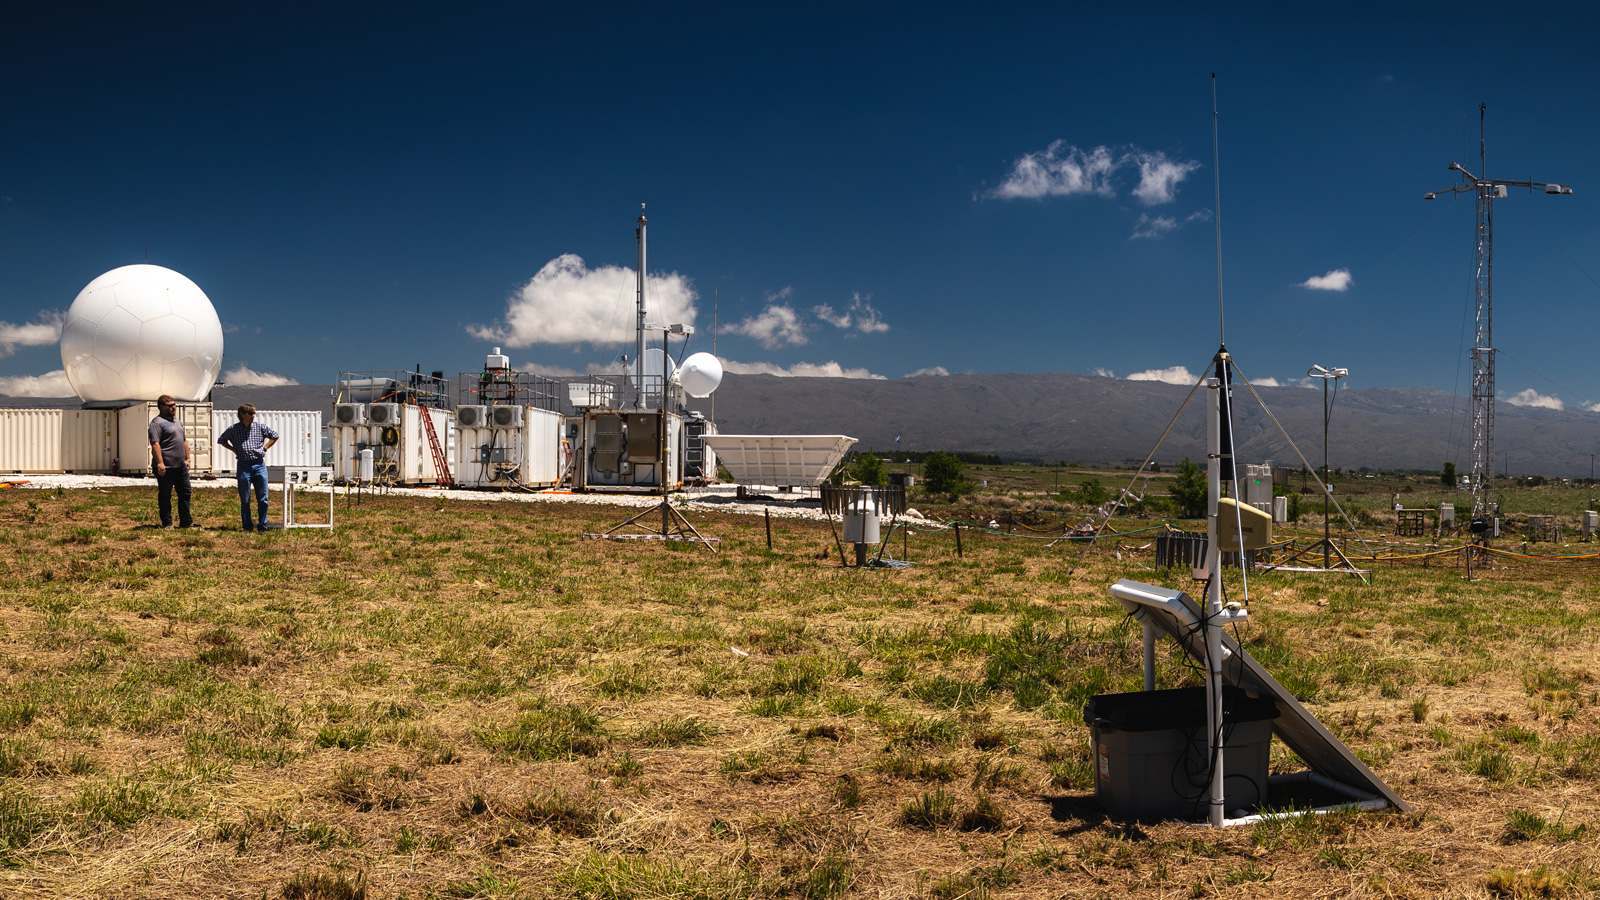 The ARM Climate Research Facility (Image courtesy of the U.S. Department of Energy Atmospheric Radiation Measurement (ARM) Research Facility, Jason Tomlinson.)